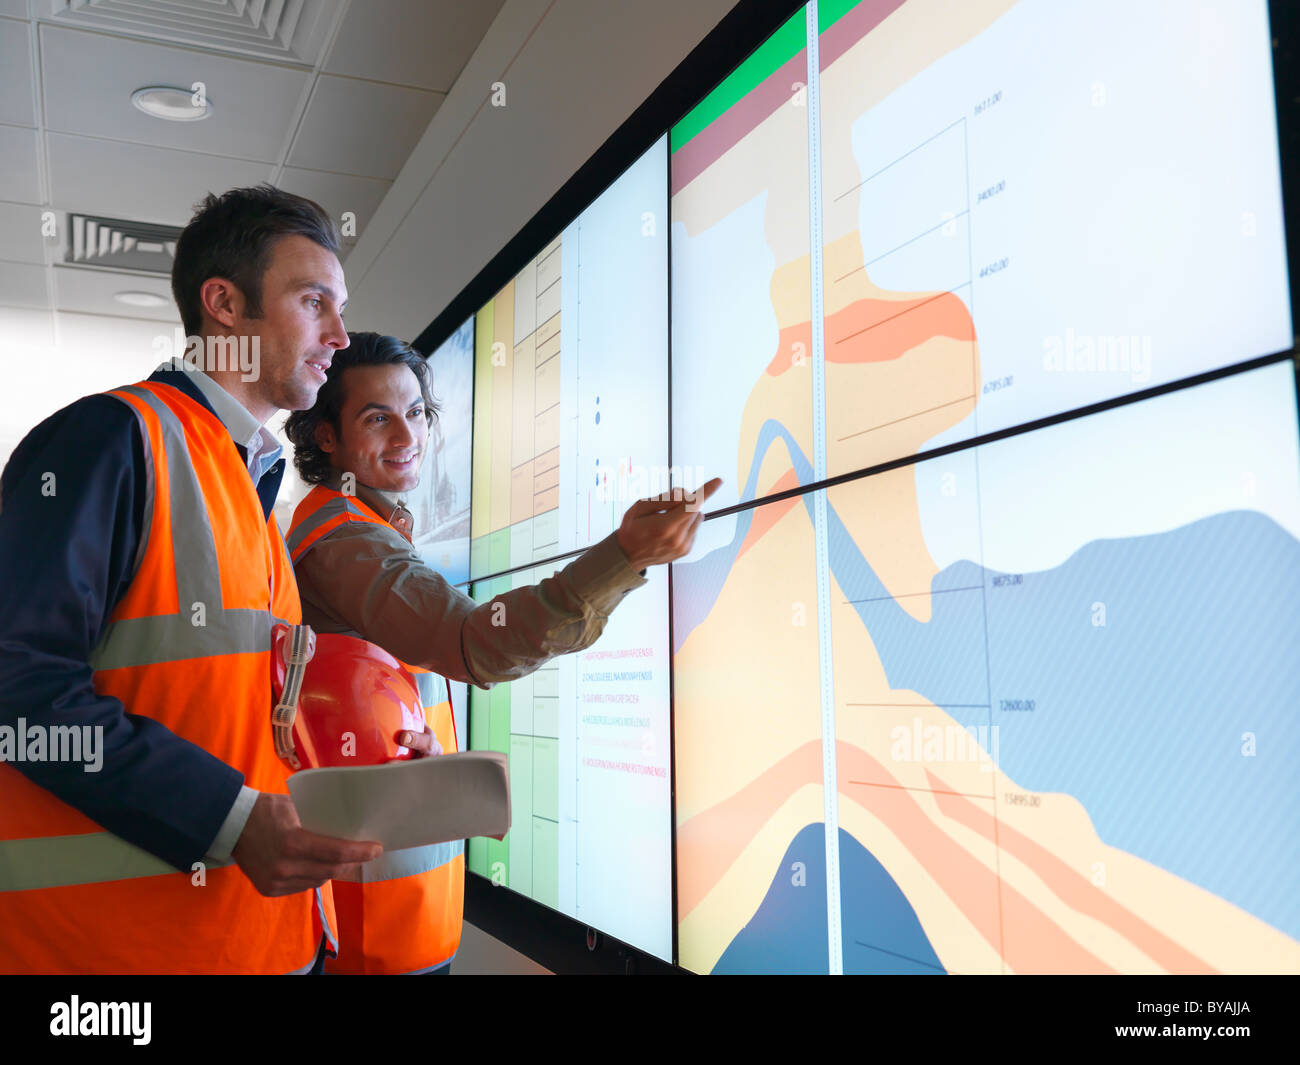 Oil workers with geology screen - Stock Image